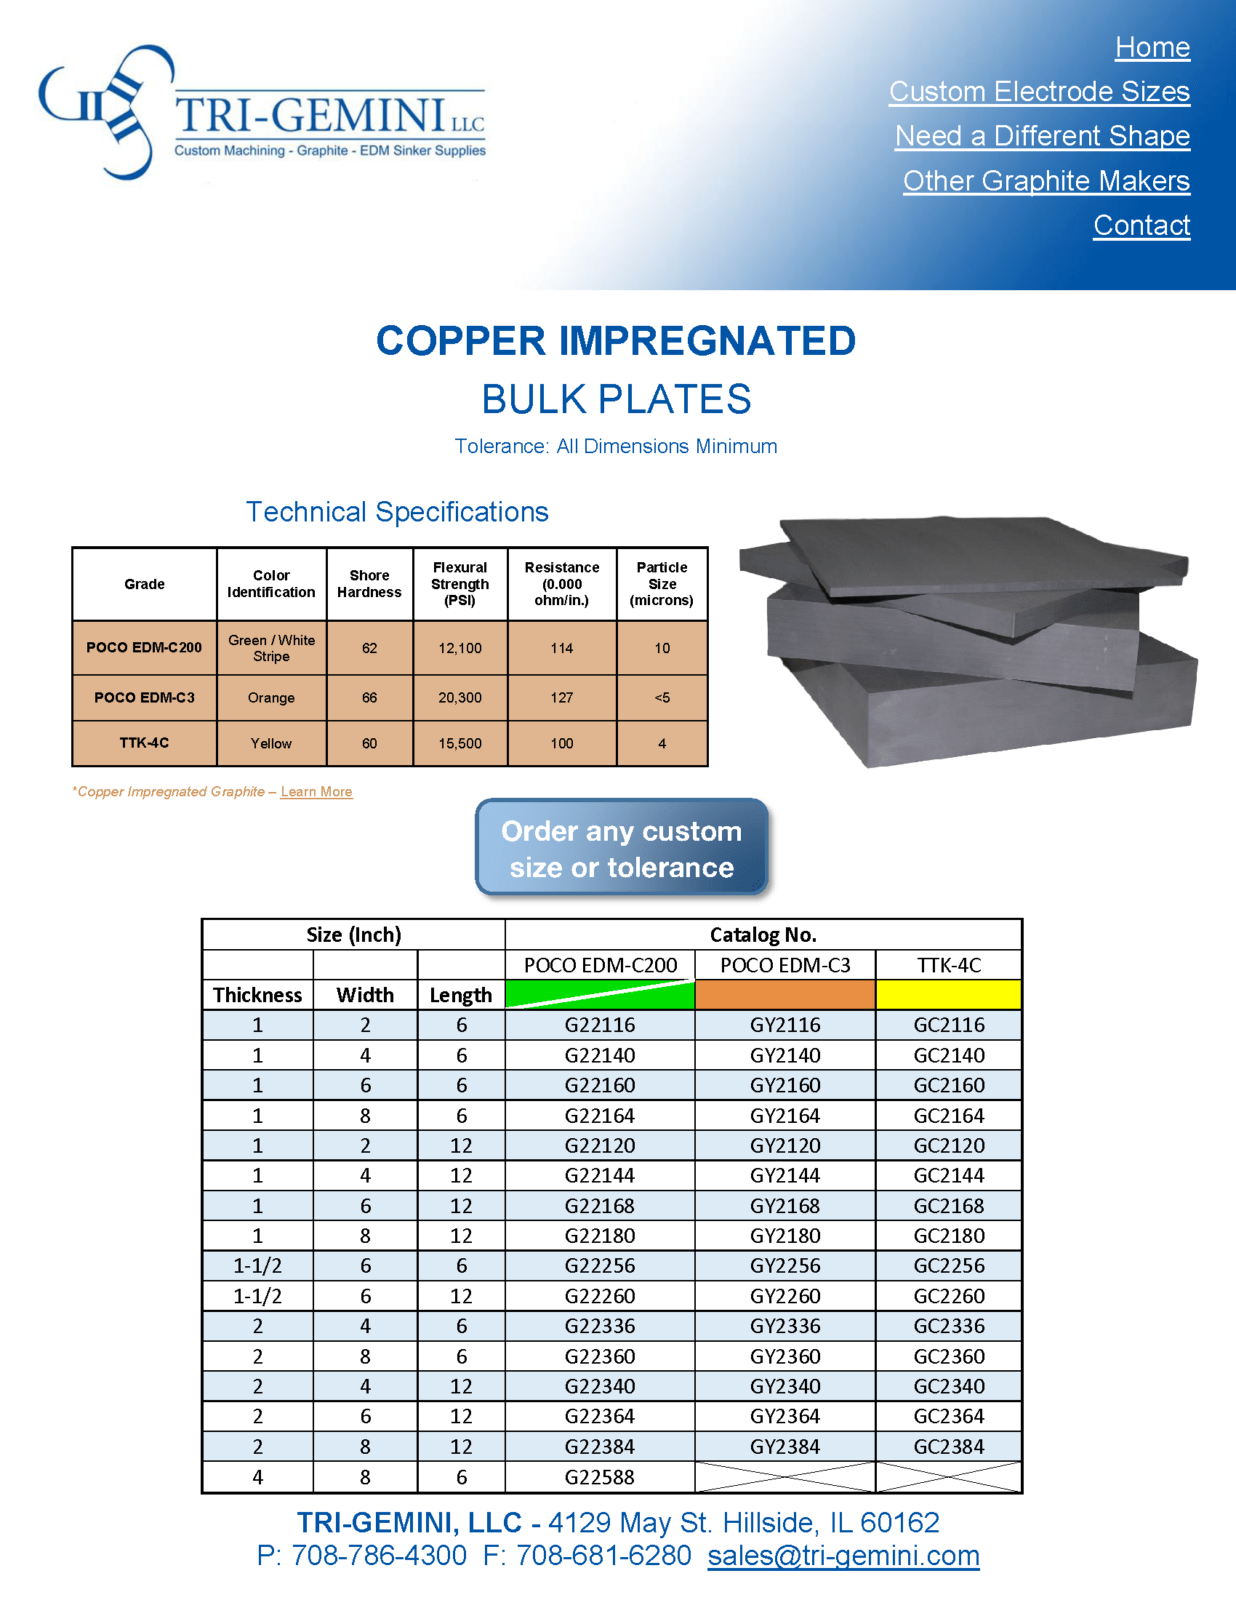 Copper Impregnated Bulk Plates